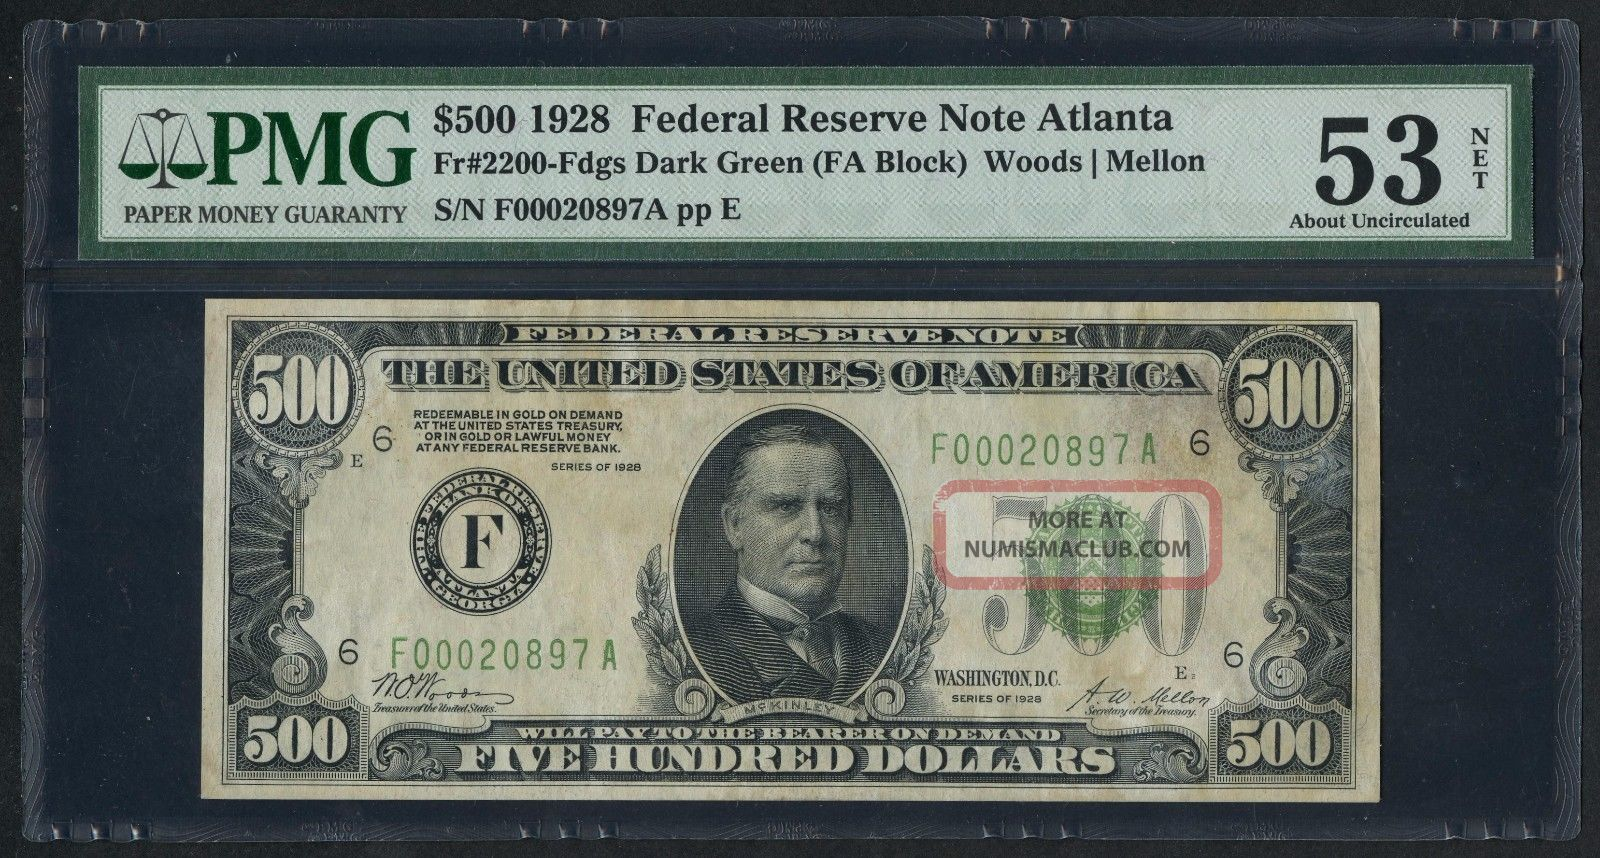 Fr2200 $500 1928 Series Frn Atlanta Pmg 53 About Unc (75 Recorded) Wlm3461 Small Size Notes photo